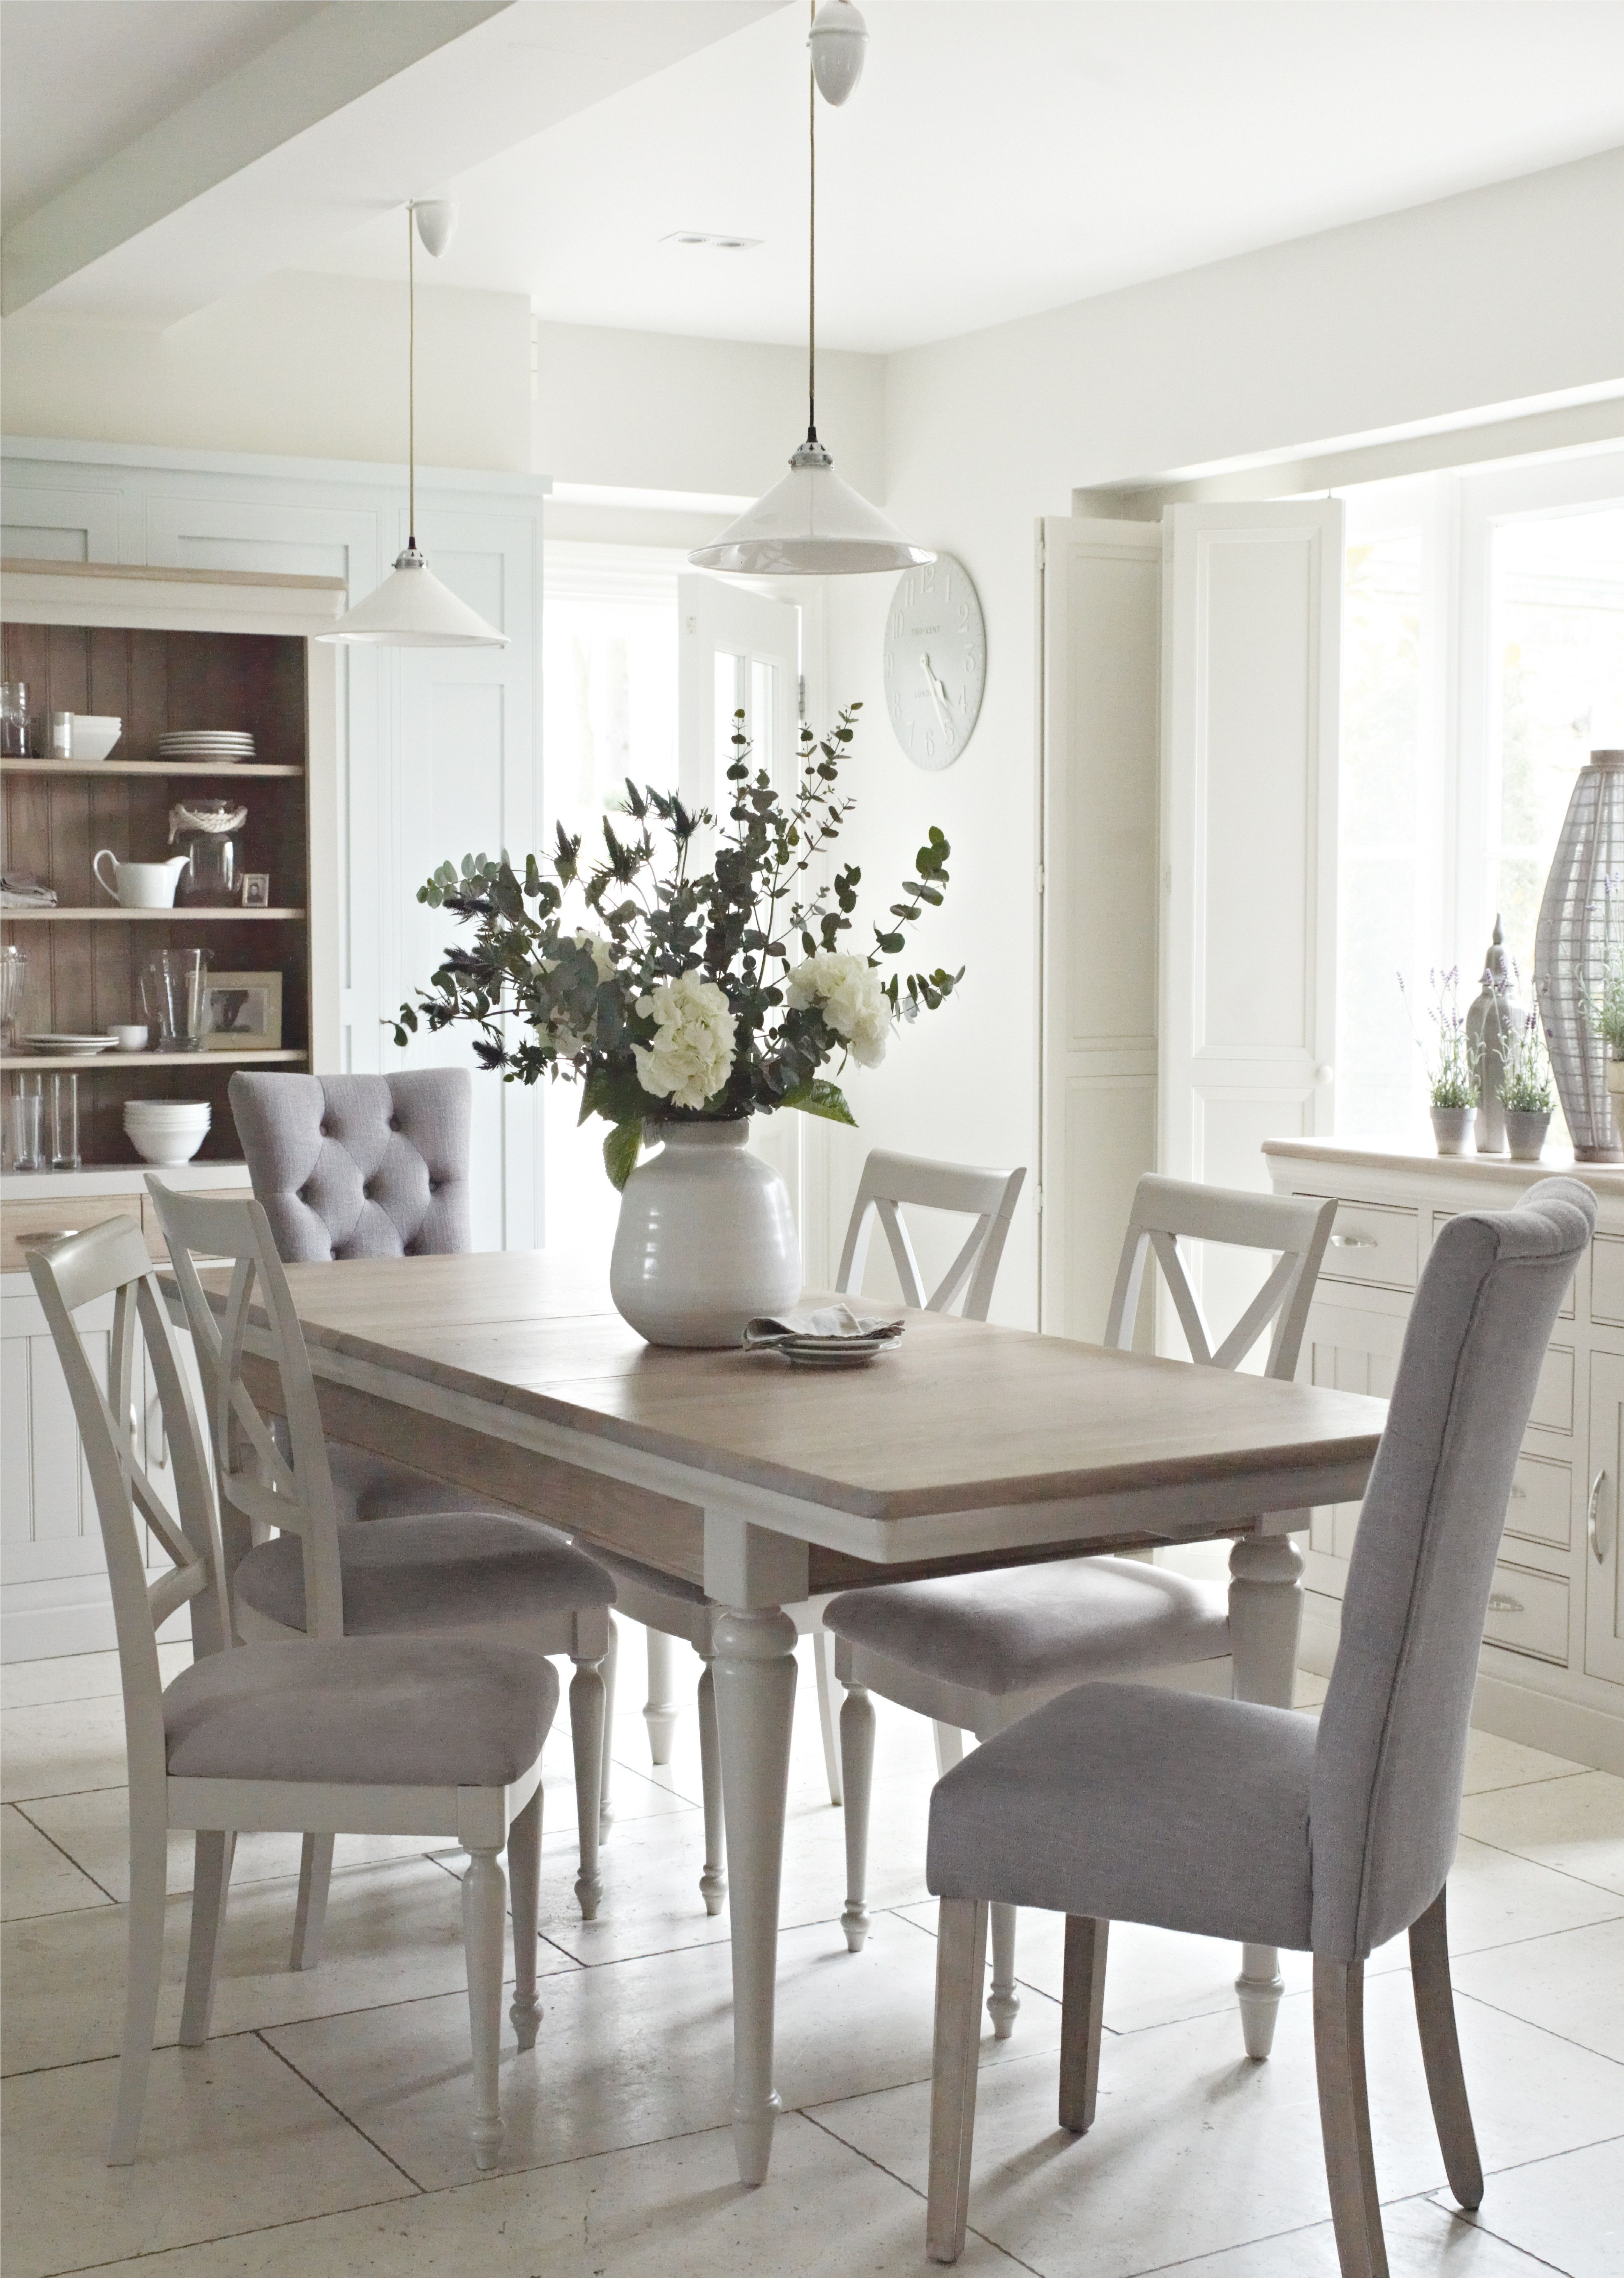 white dining room table the classic bambury dining group exudes country chic.  with painted UEKXCQH